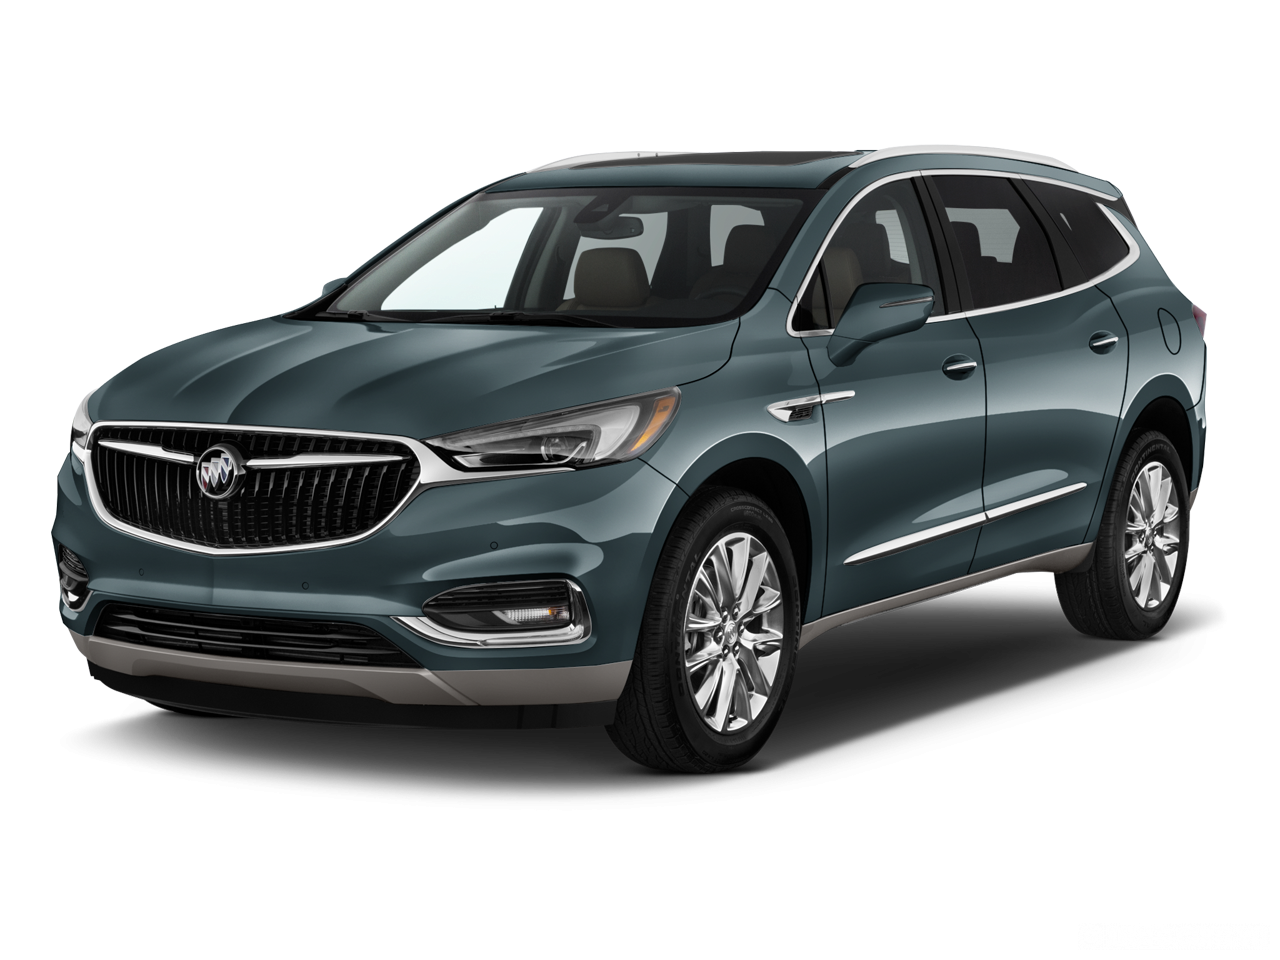 Xe Buick Enclave 2019